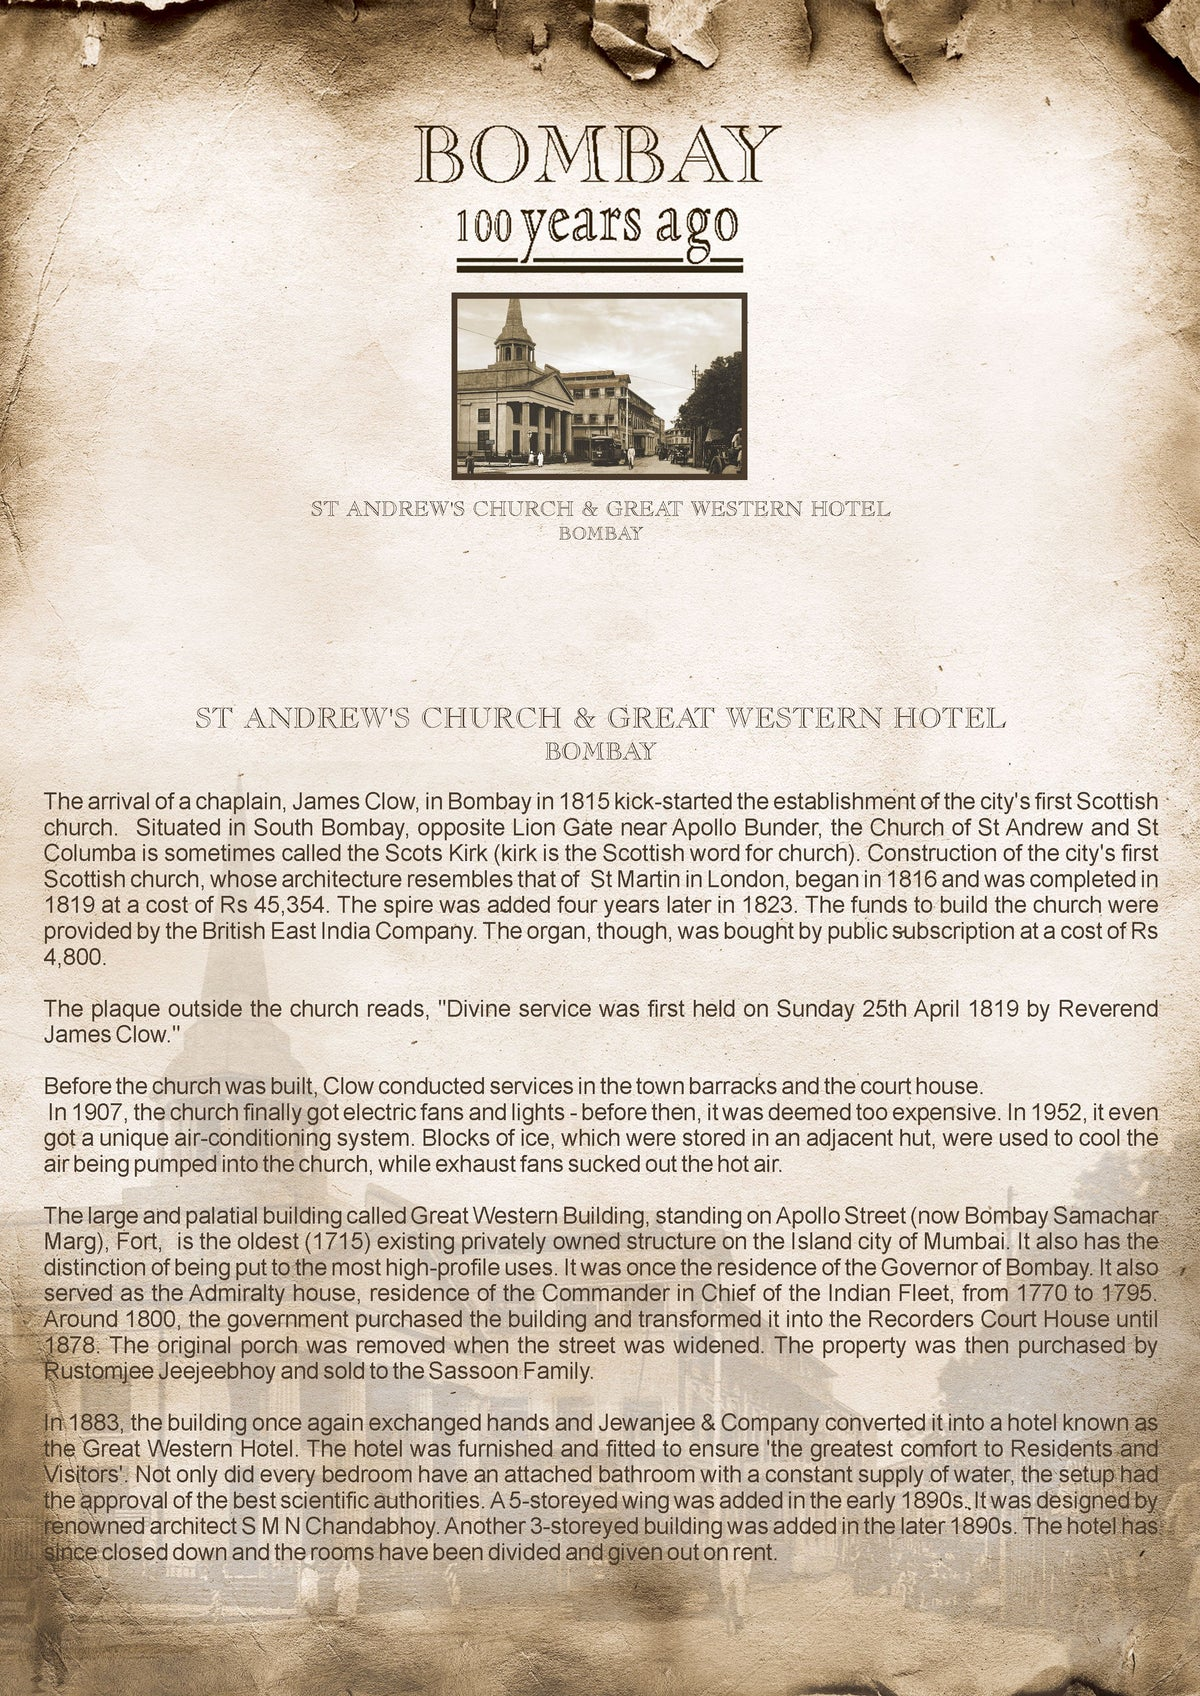 St. Andrews Church & Great Western Hotel